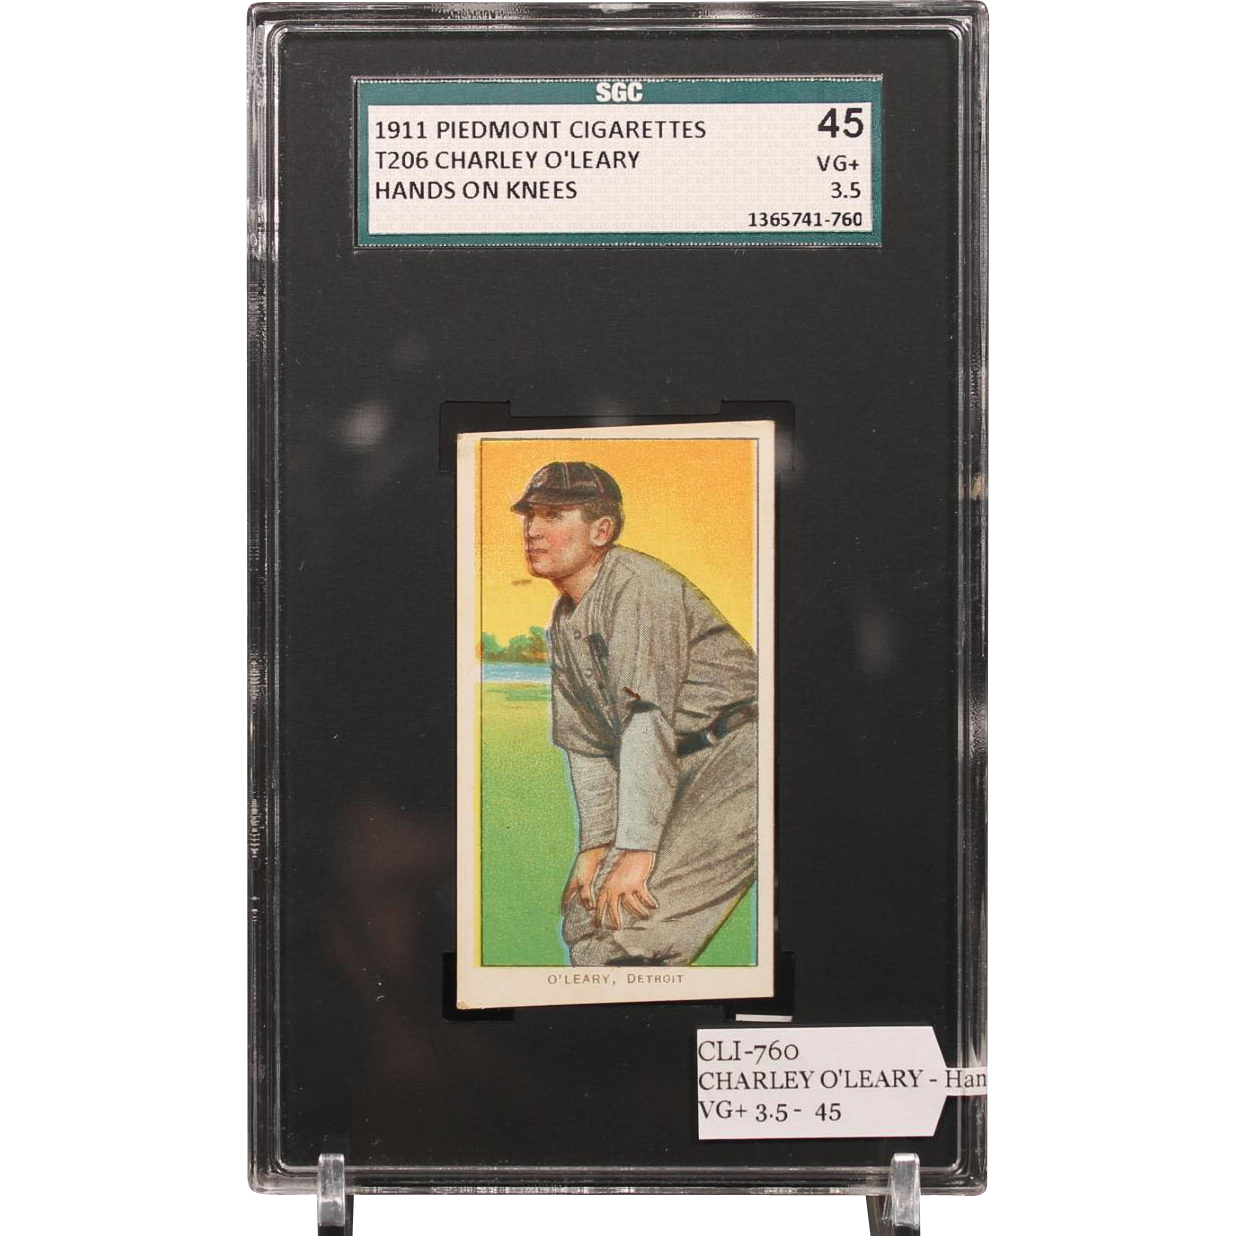 T206 CHARLEY O'LEARY - Hands on Knees SGC grade 45 VG+ 3.5